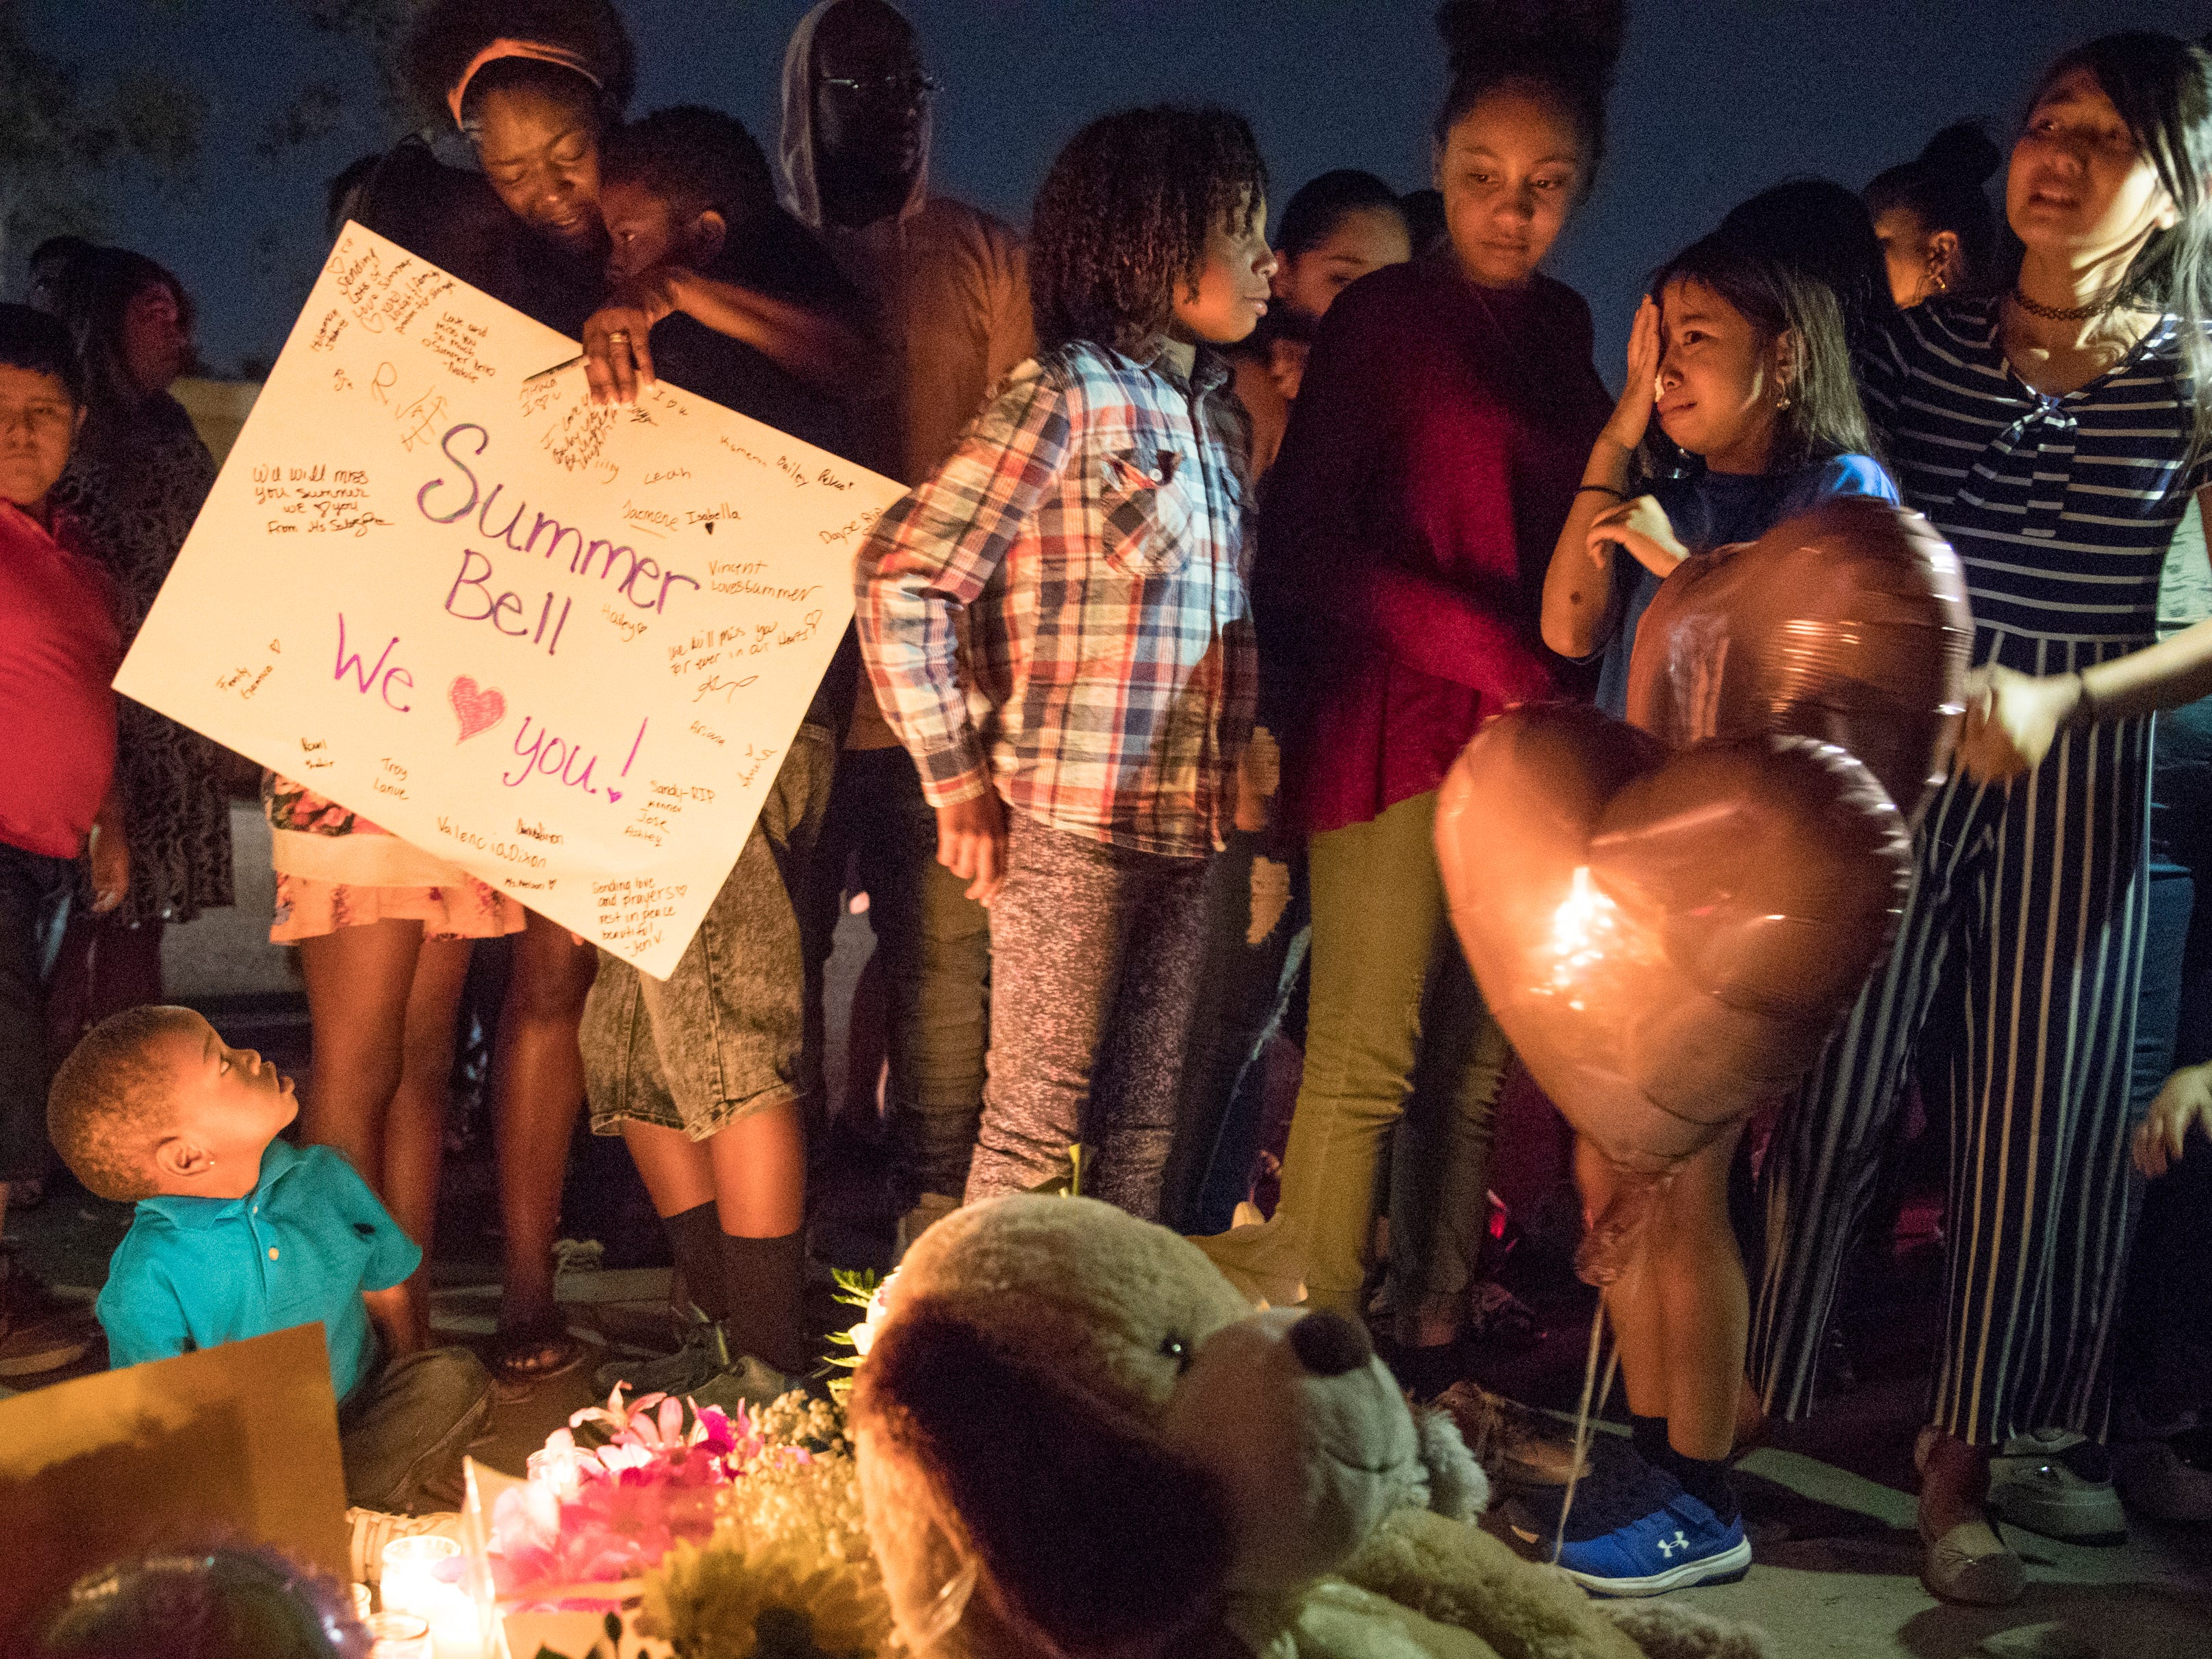 Classmates and friends grieve with Summer Bell Brown's family on April 5, 2019.